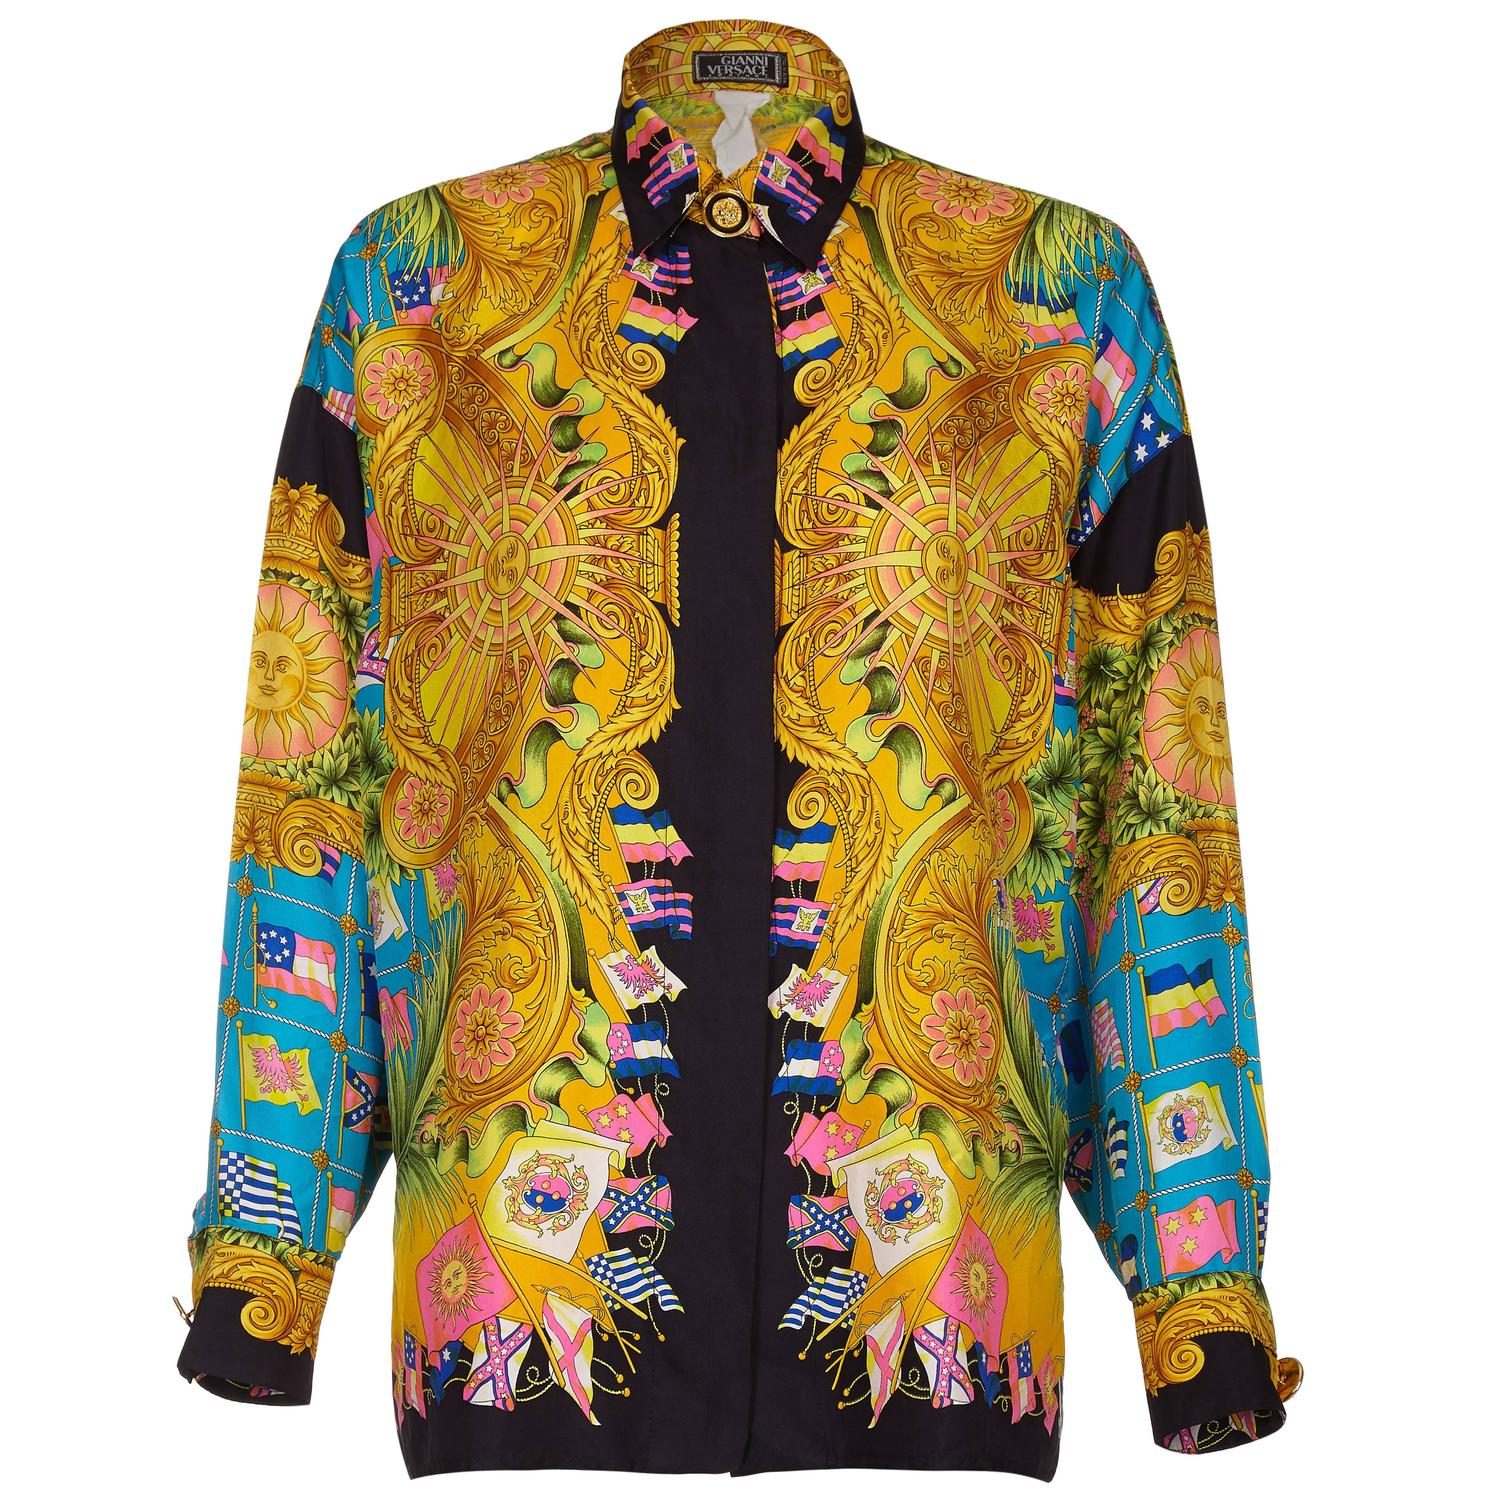 1990s gianni versace couture silk baroque shirt with flag print for sale at 1stdibs. Black Bedroom Furniture Sets. Home Design Ideas